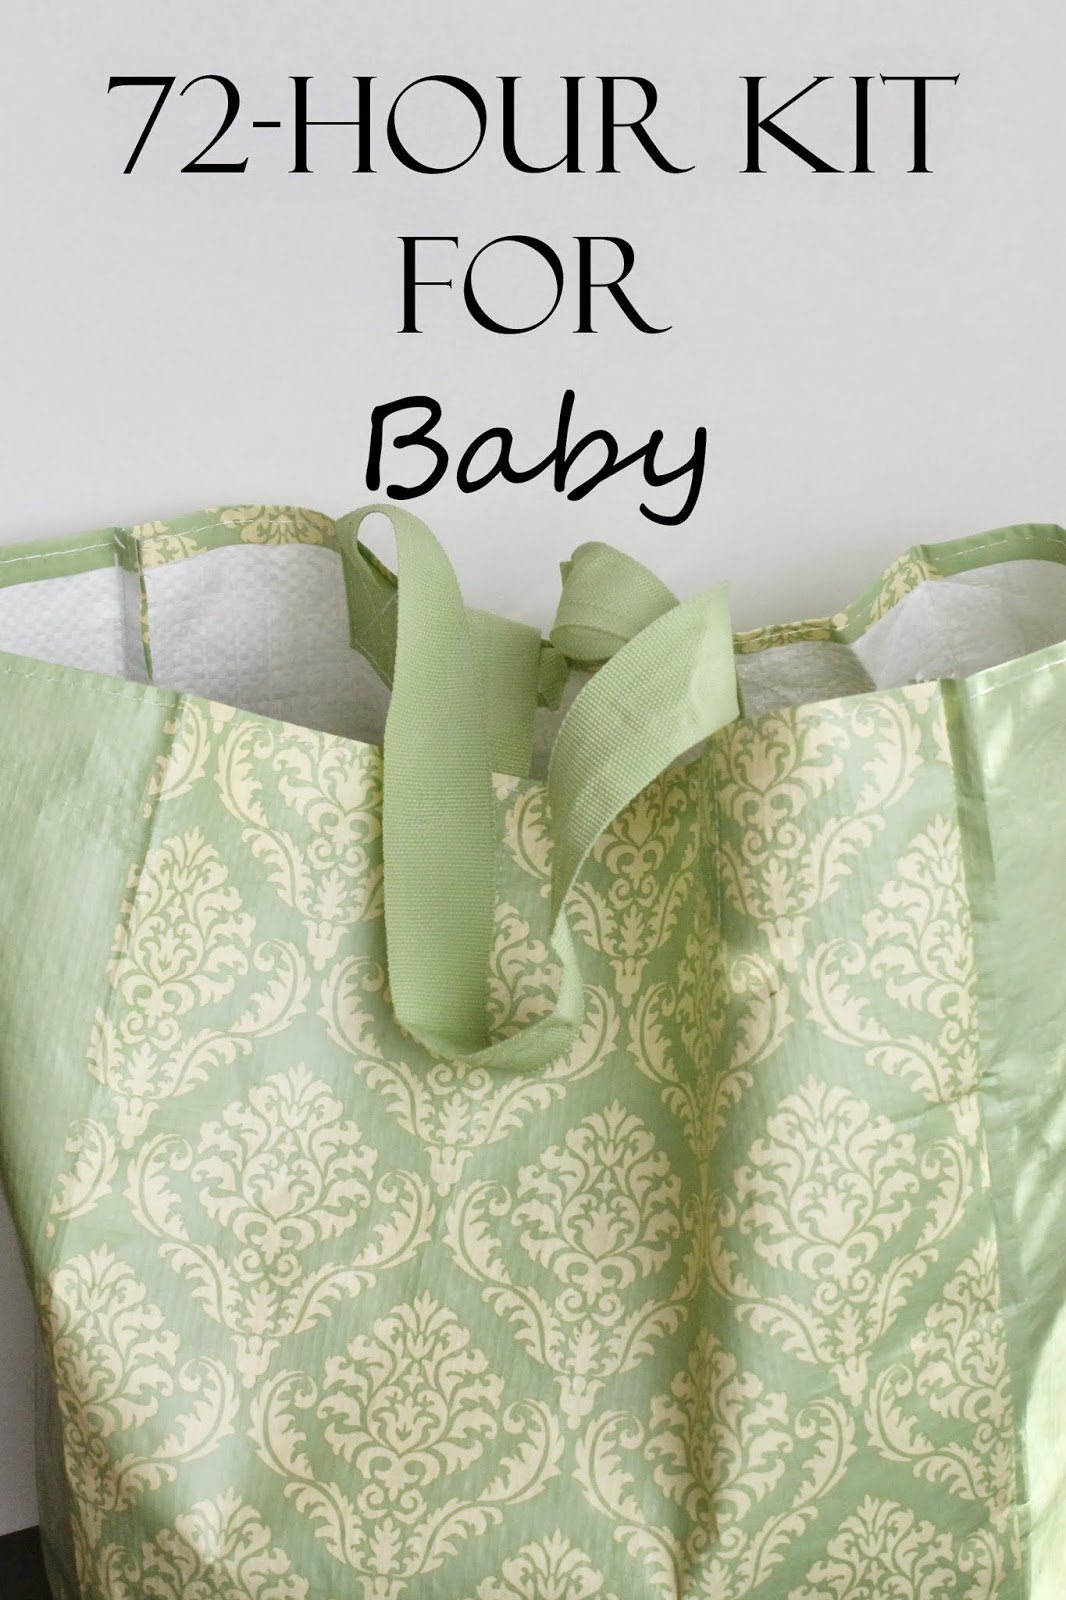 emergency kit for baby